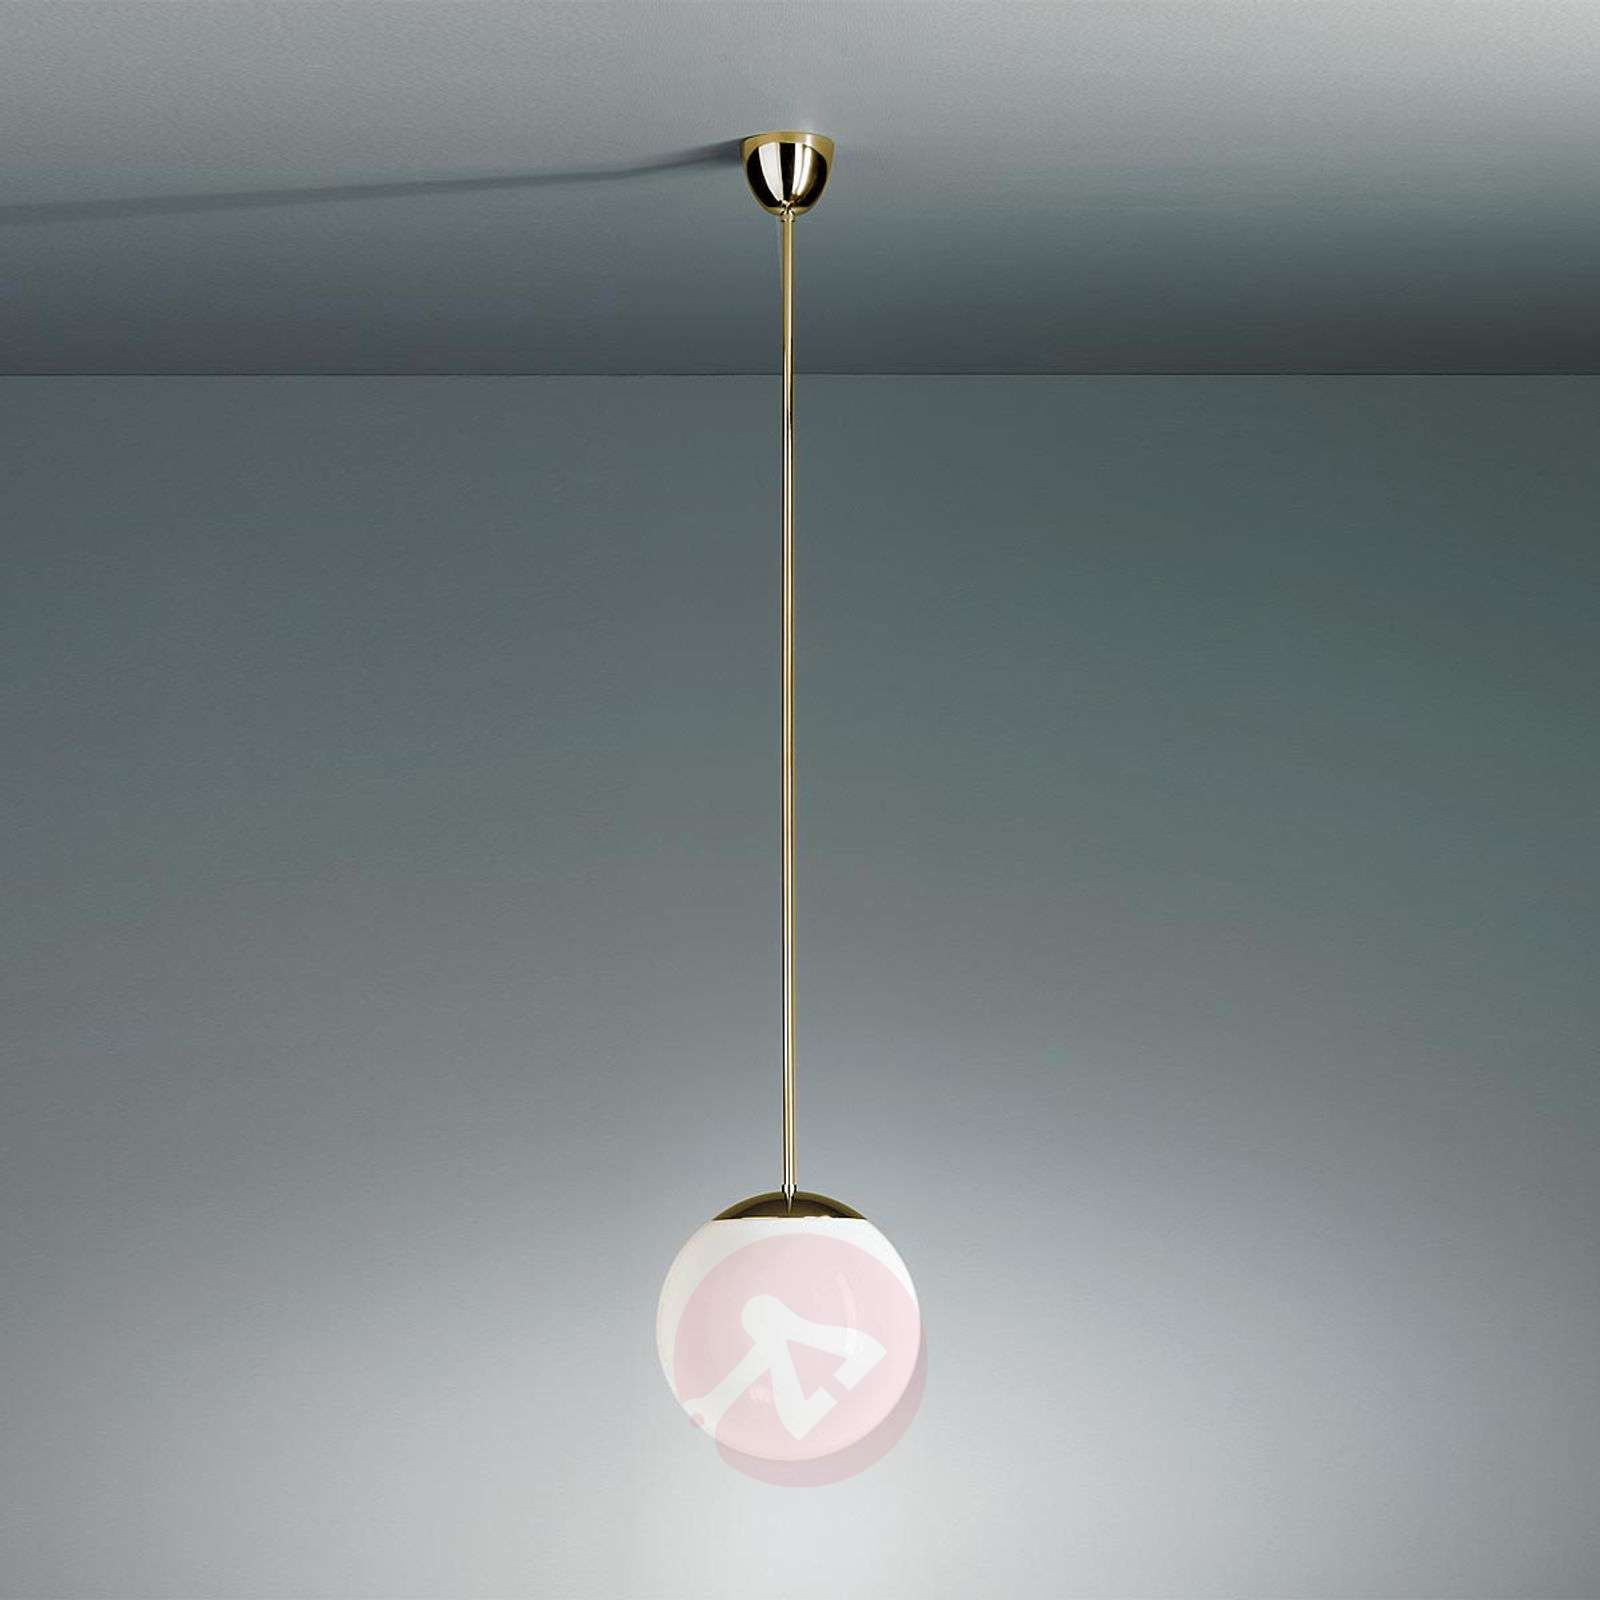 Pendant light with opal sphere-9030103X-01